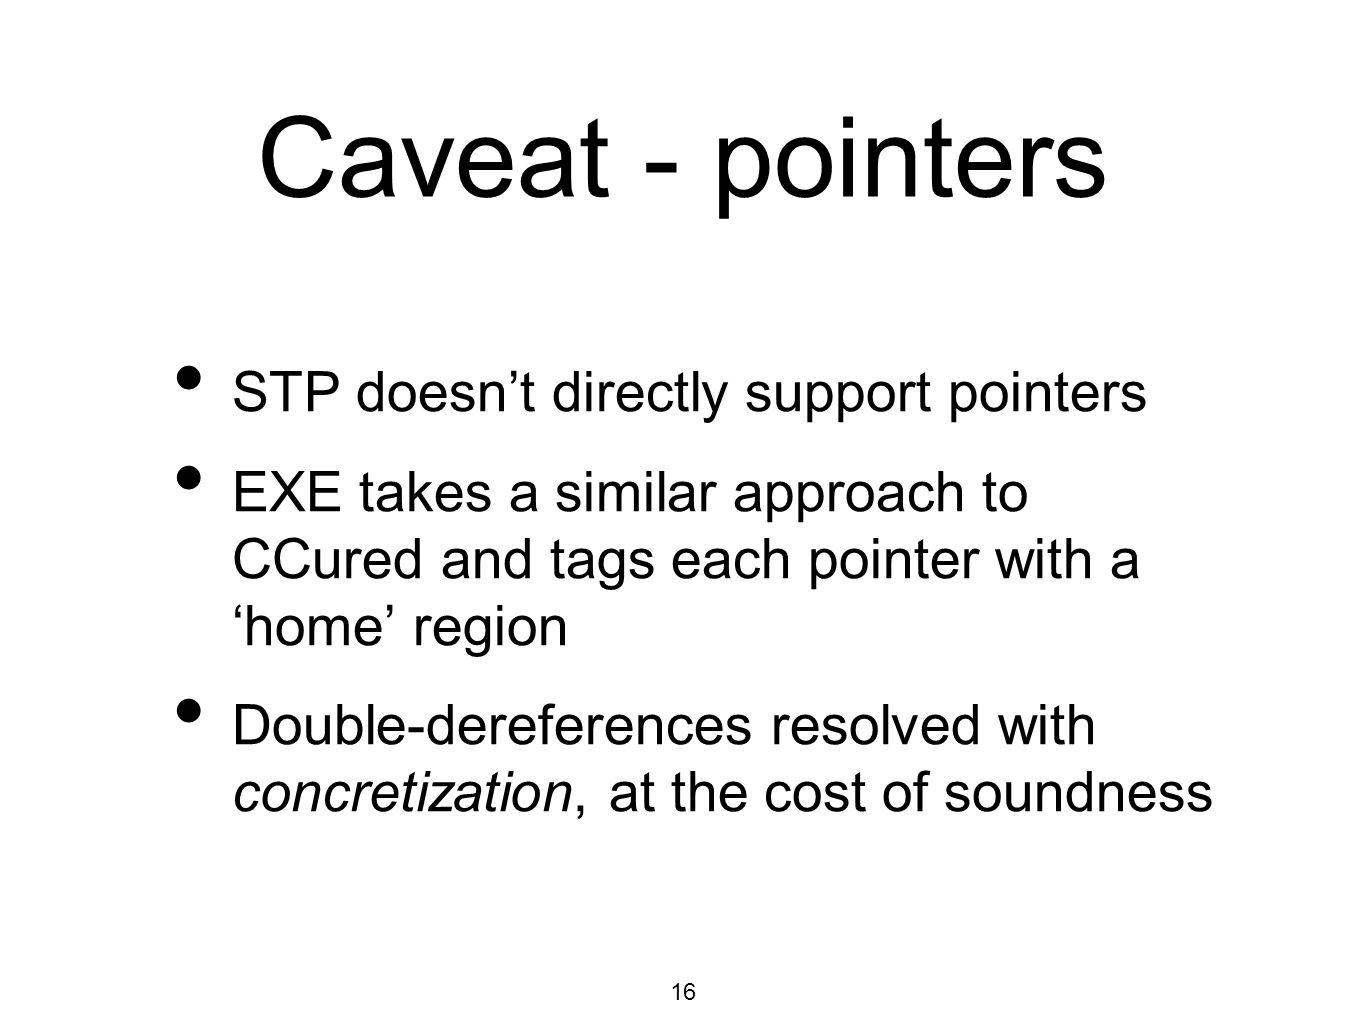 16 Caveat - pointers STP doesn't directly support pointers EXE takes a similar approach to CCured and tags each pointer with a 'home' region Double-dereferences resolved with concretization, at the cost of soundness